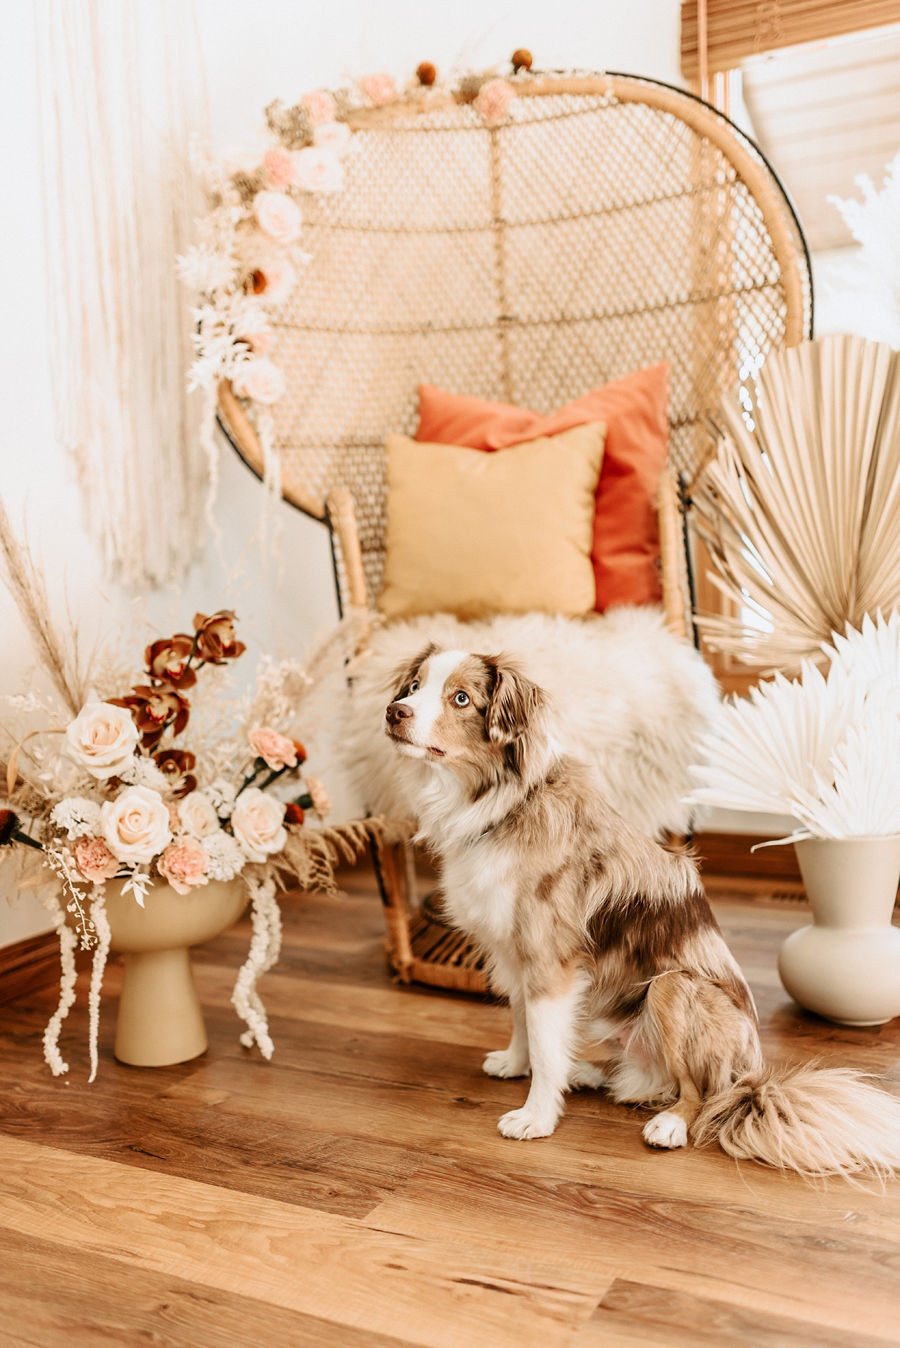 A fluffy brown dog sits on the hardwood floor infront of a boho wicker chair decorated with florals at a boho baby shower.